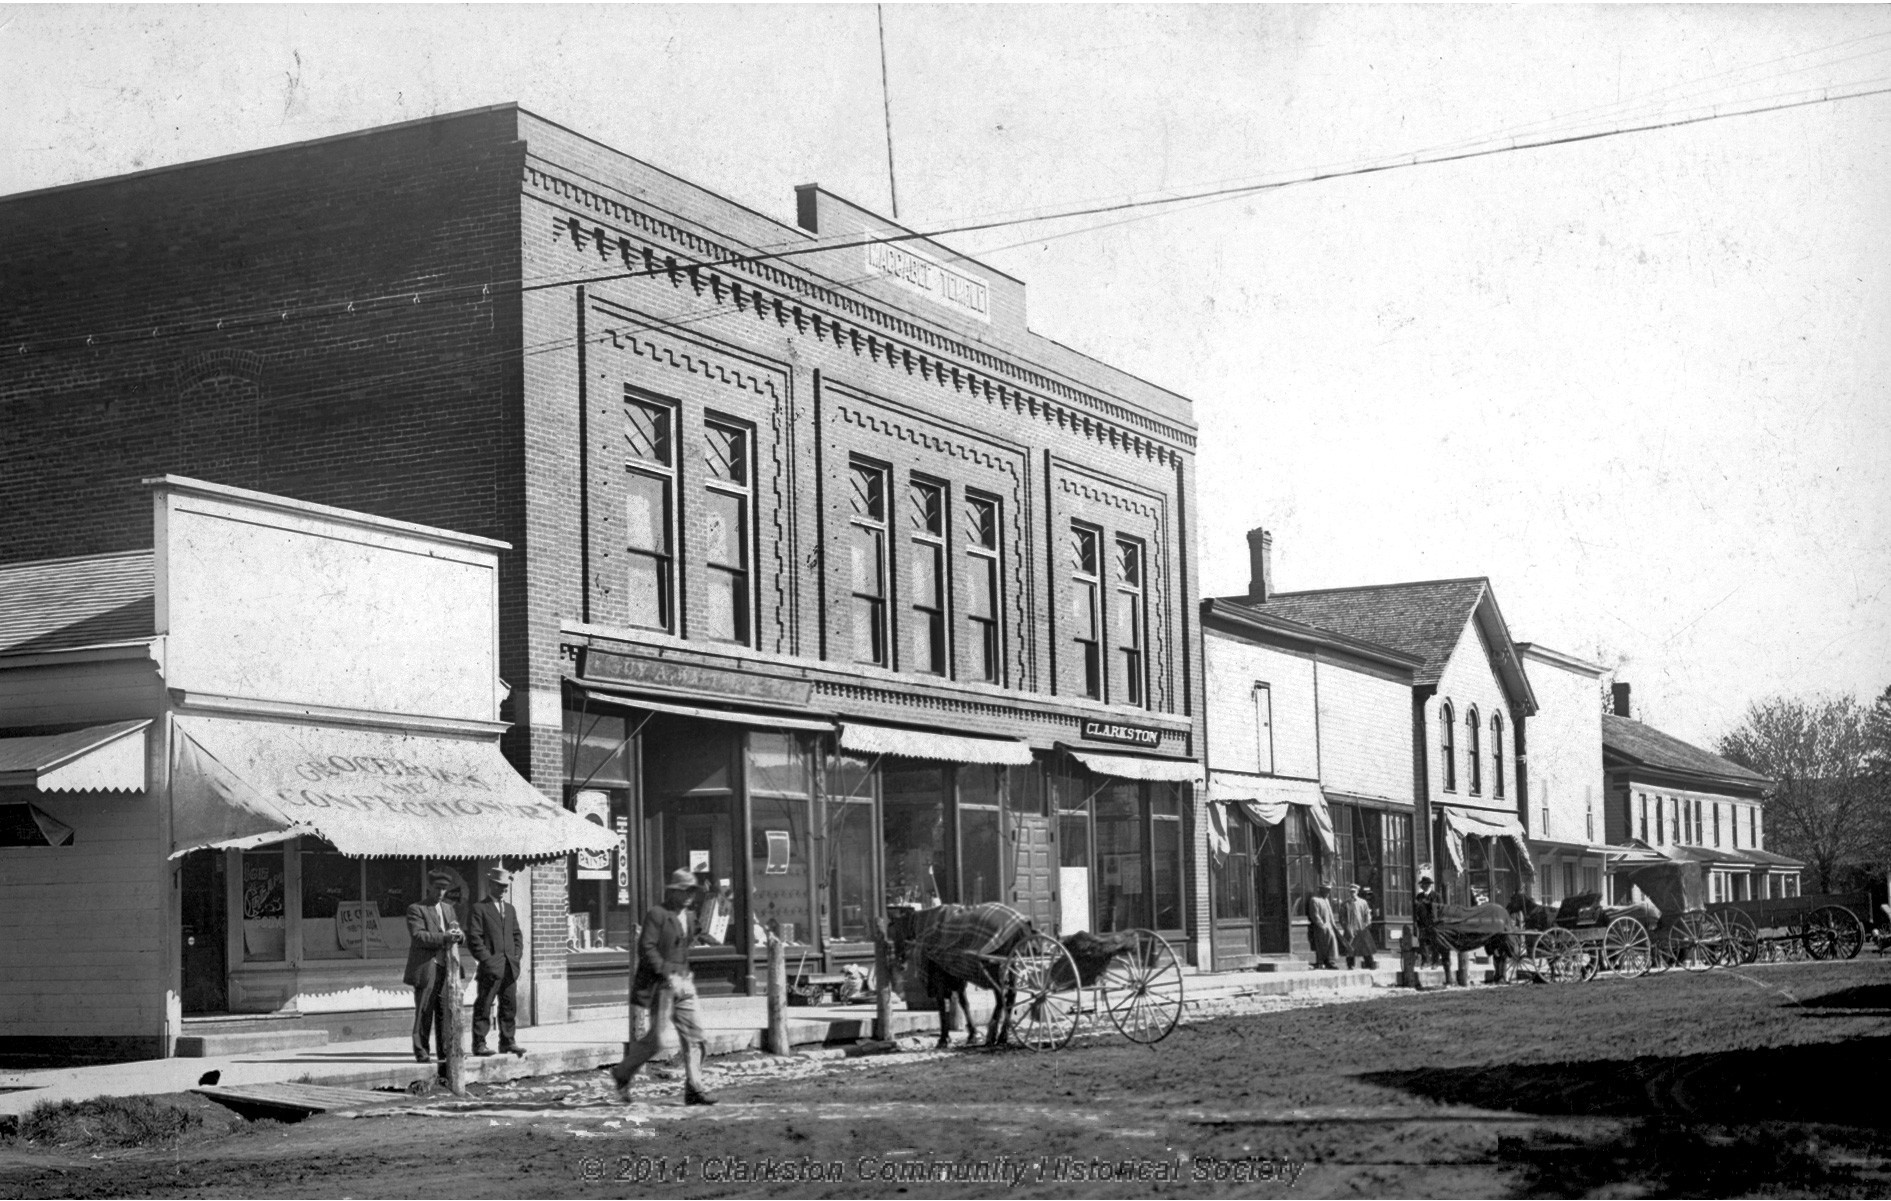 East Side of South Main Street, c. 1908